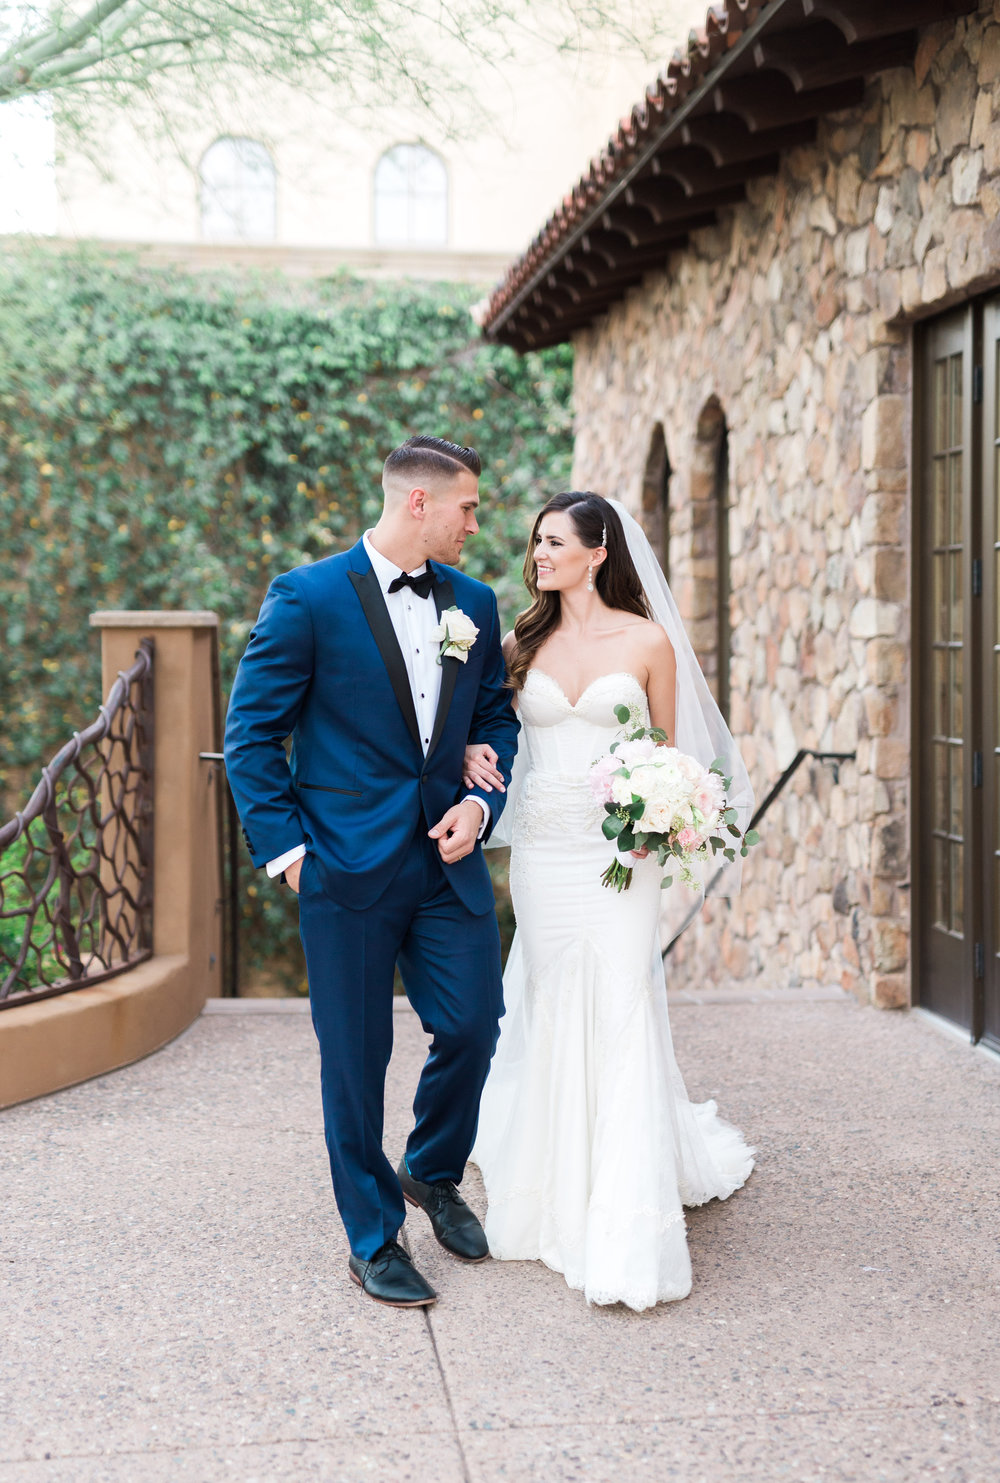 WEDDING    Cassandra & Robert     Blackstone Country Club, Vistancia, AZ